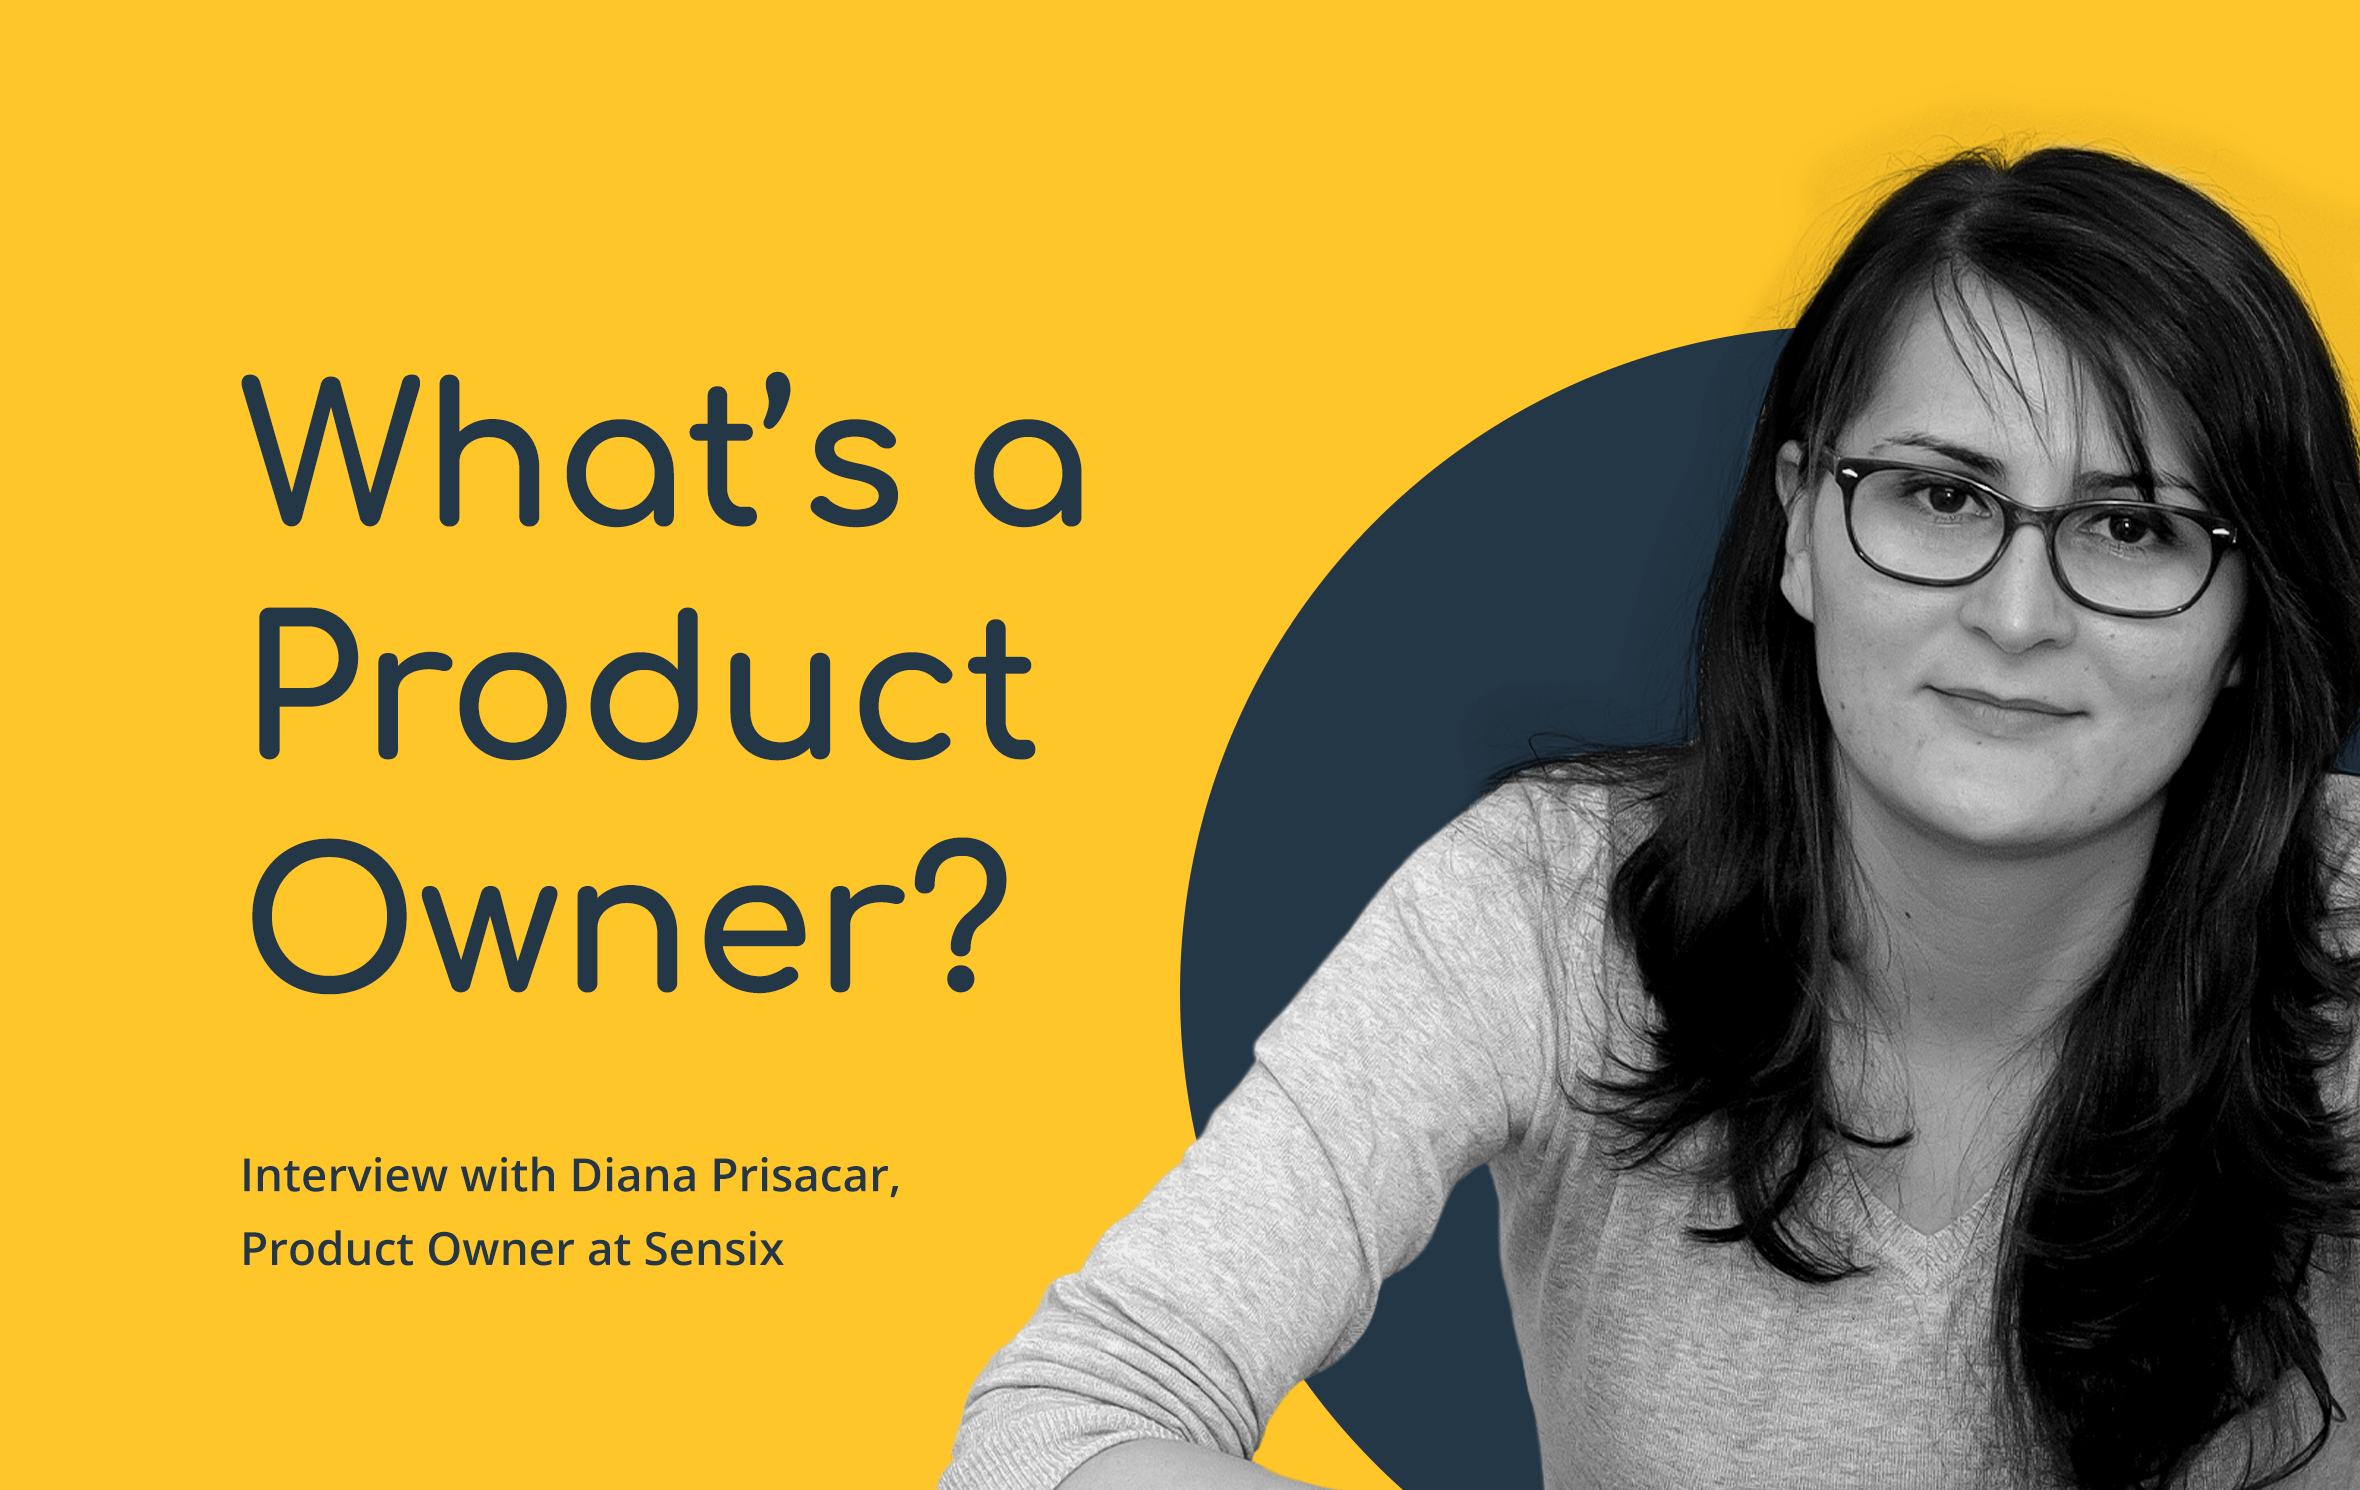 What's a Product Owner?